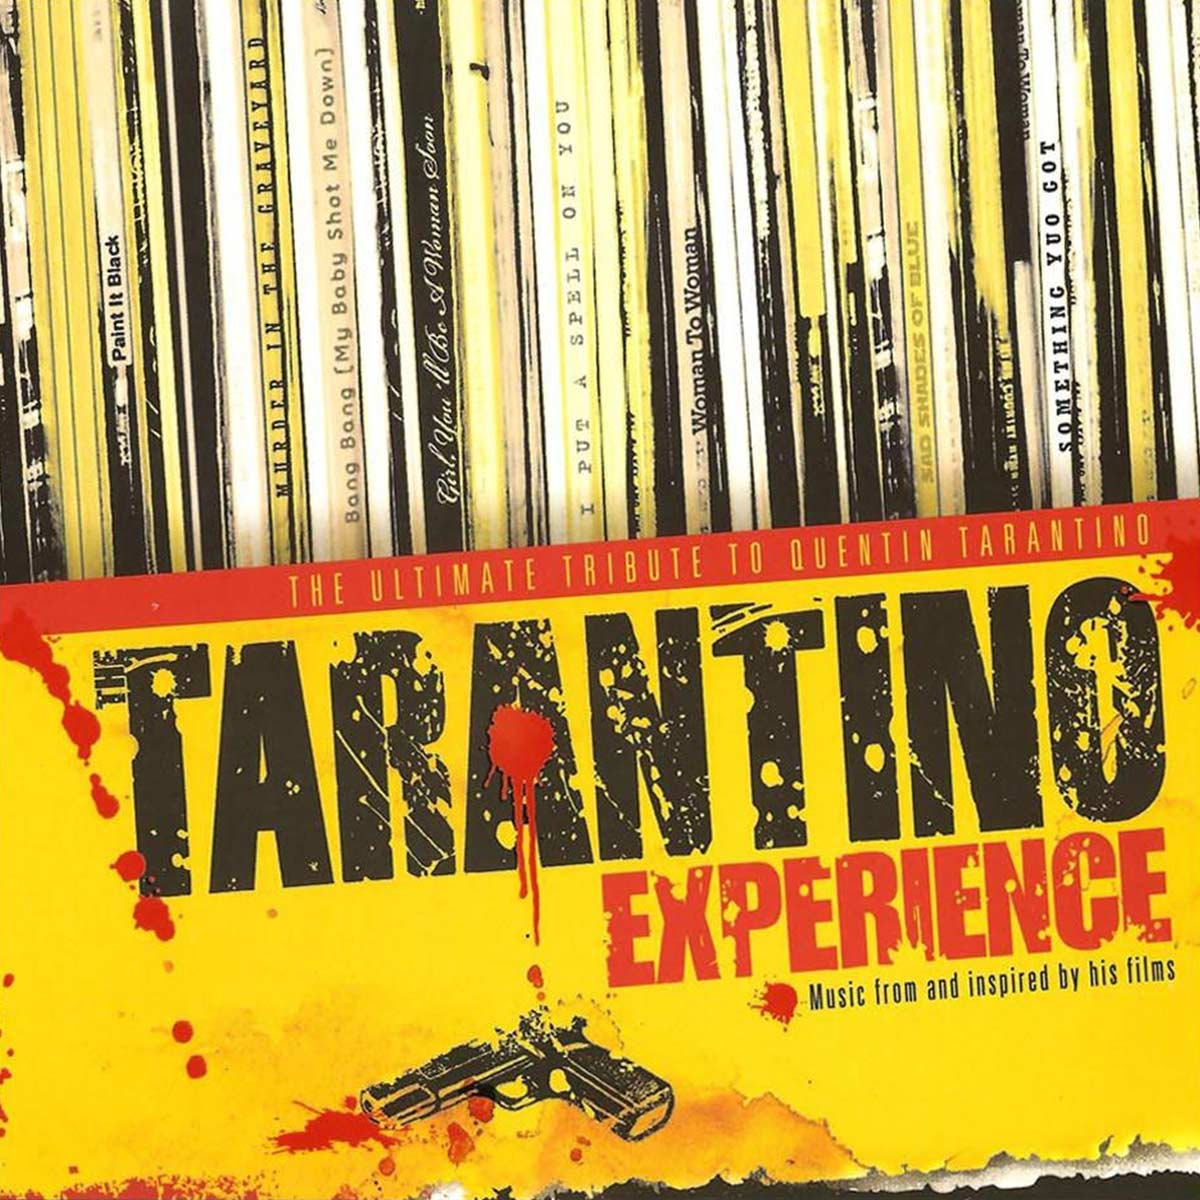 CD Box Tarantino Experience